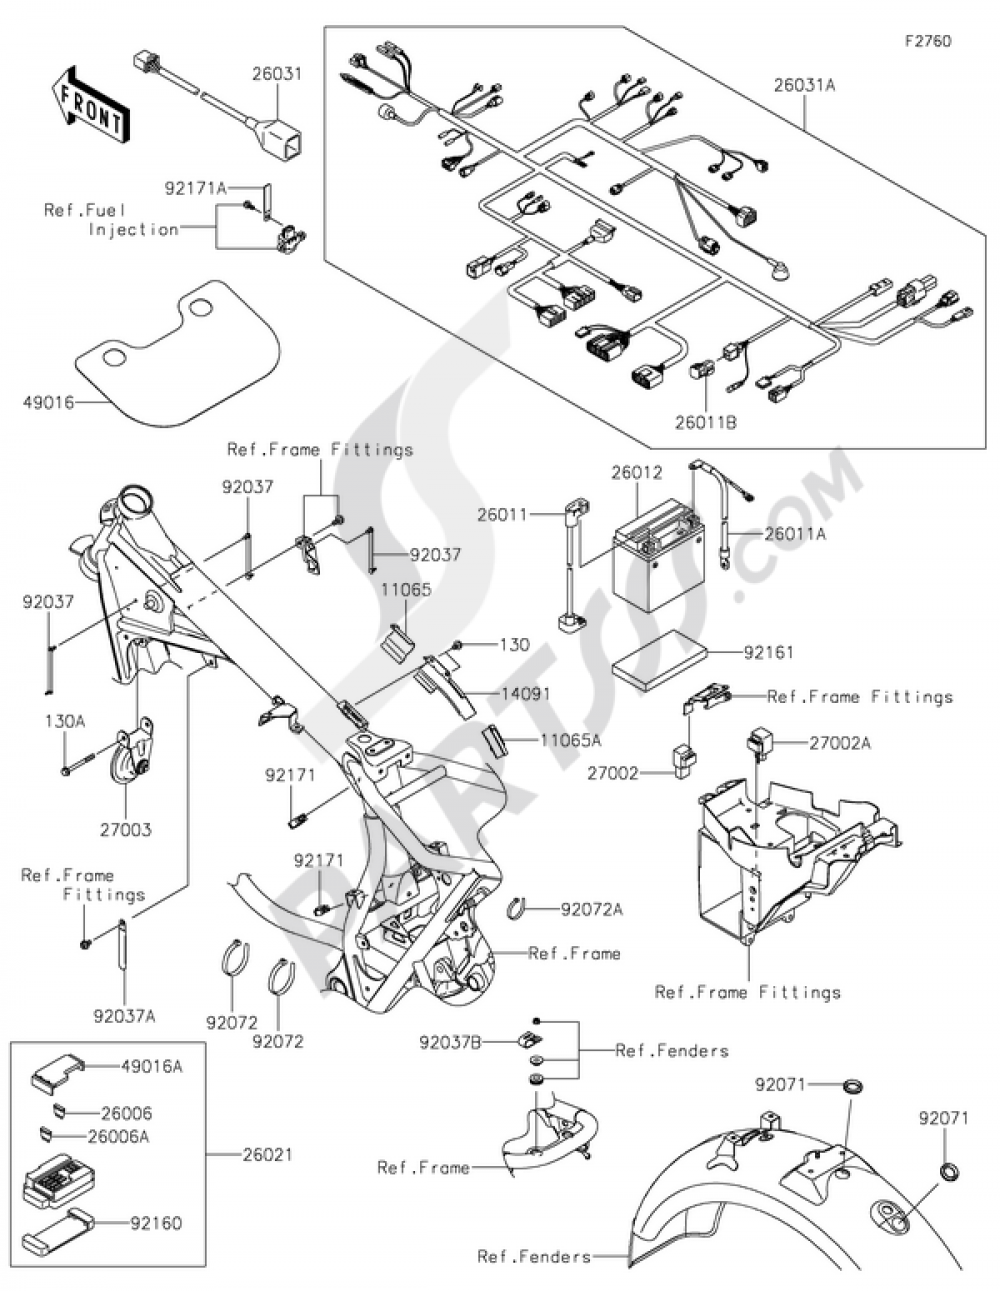 Kawasaki W800 Wiring Diagram Simple Diagrams Together With Klr 650 On Pioneer Chassis Electrical Equipment 2015 2006 Klr650